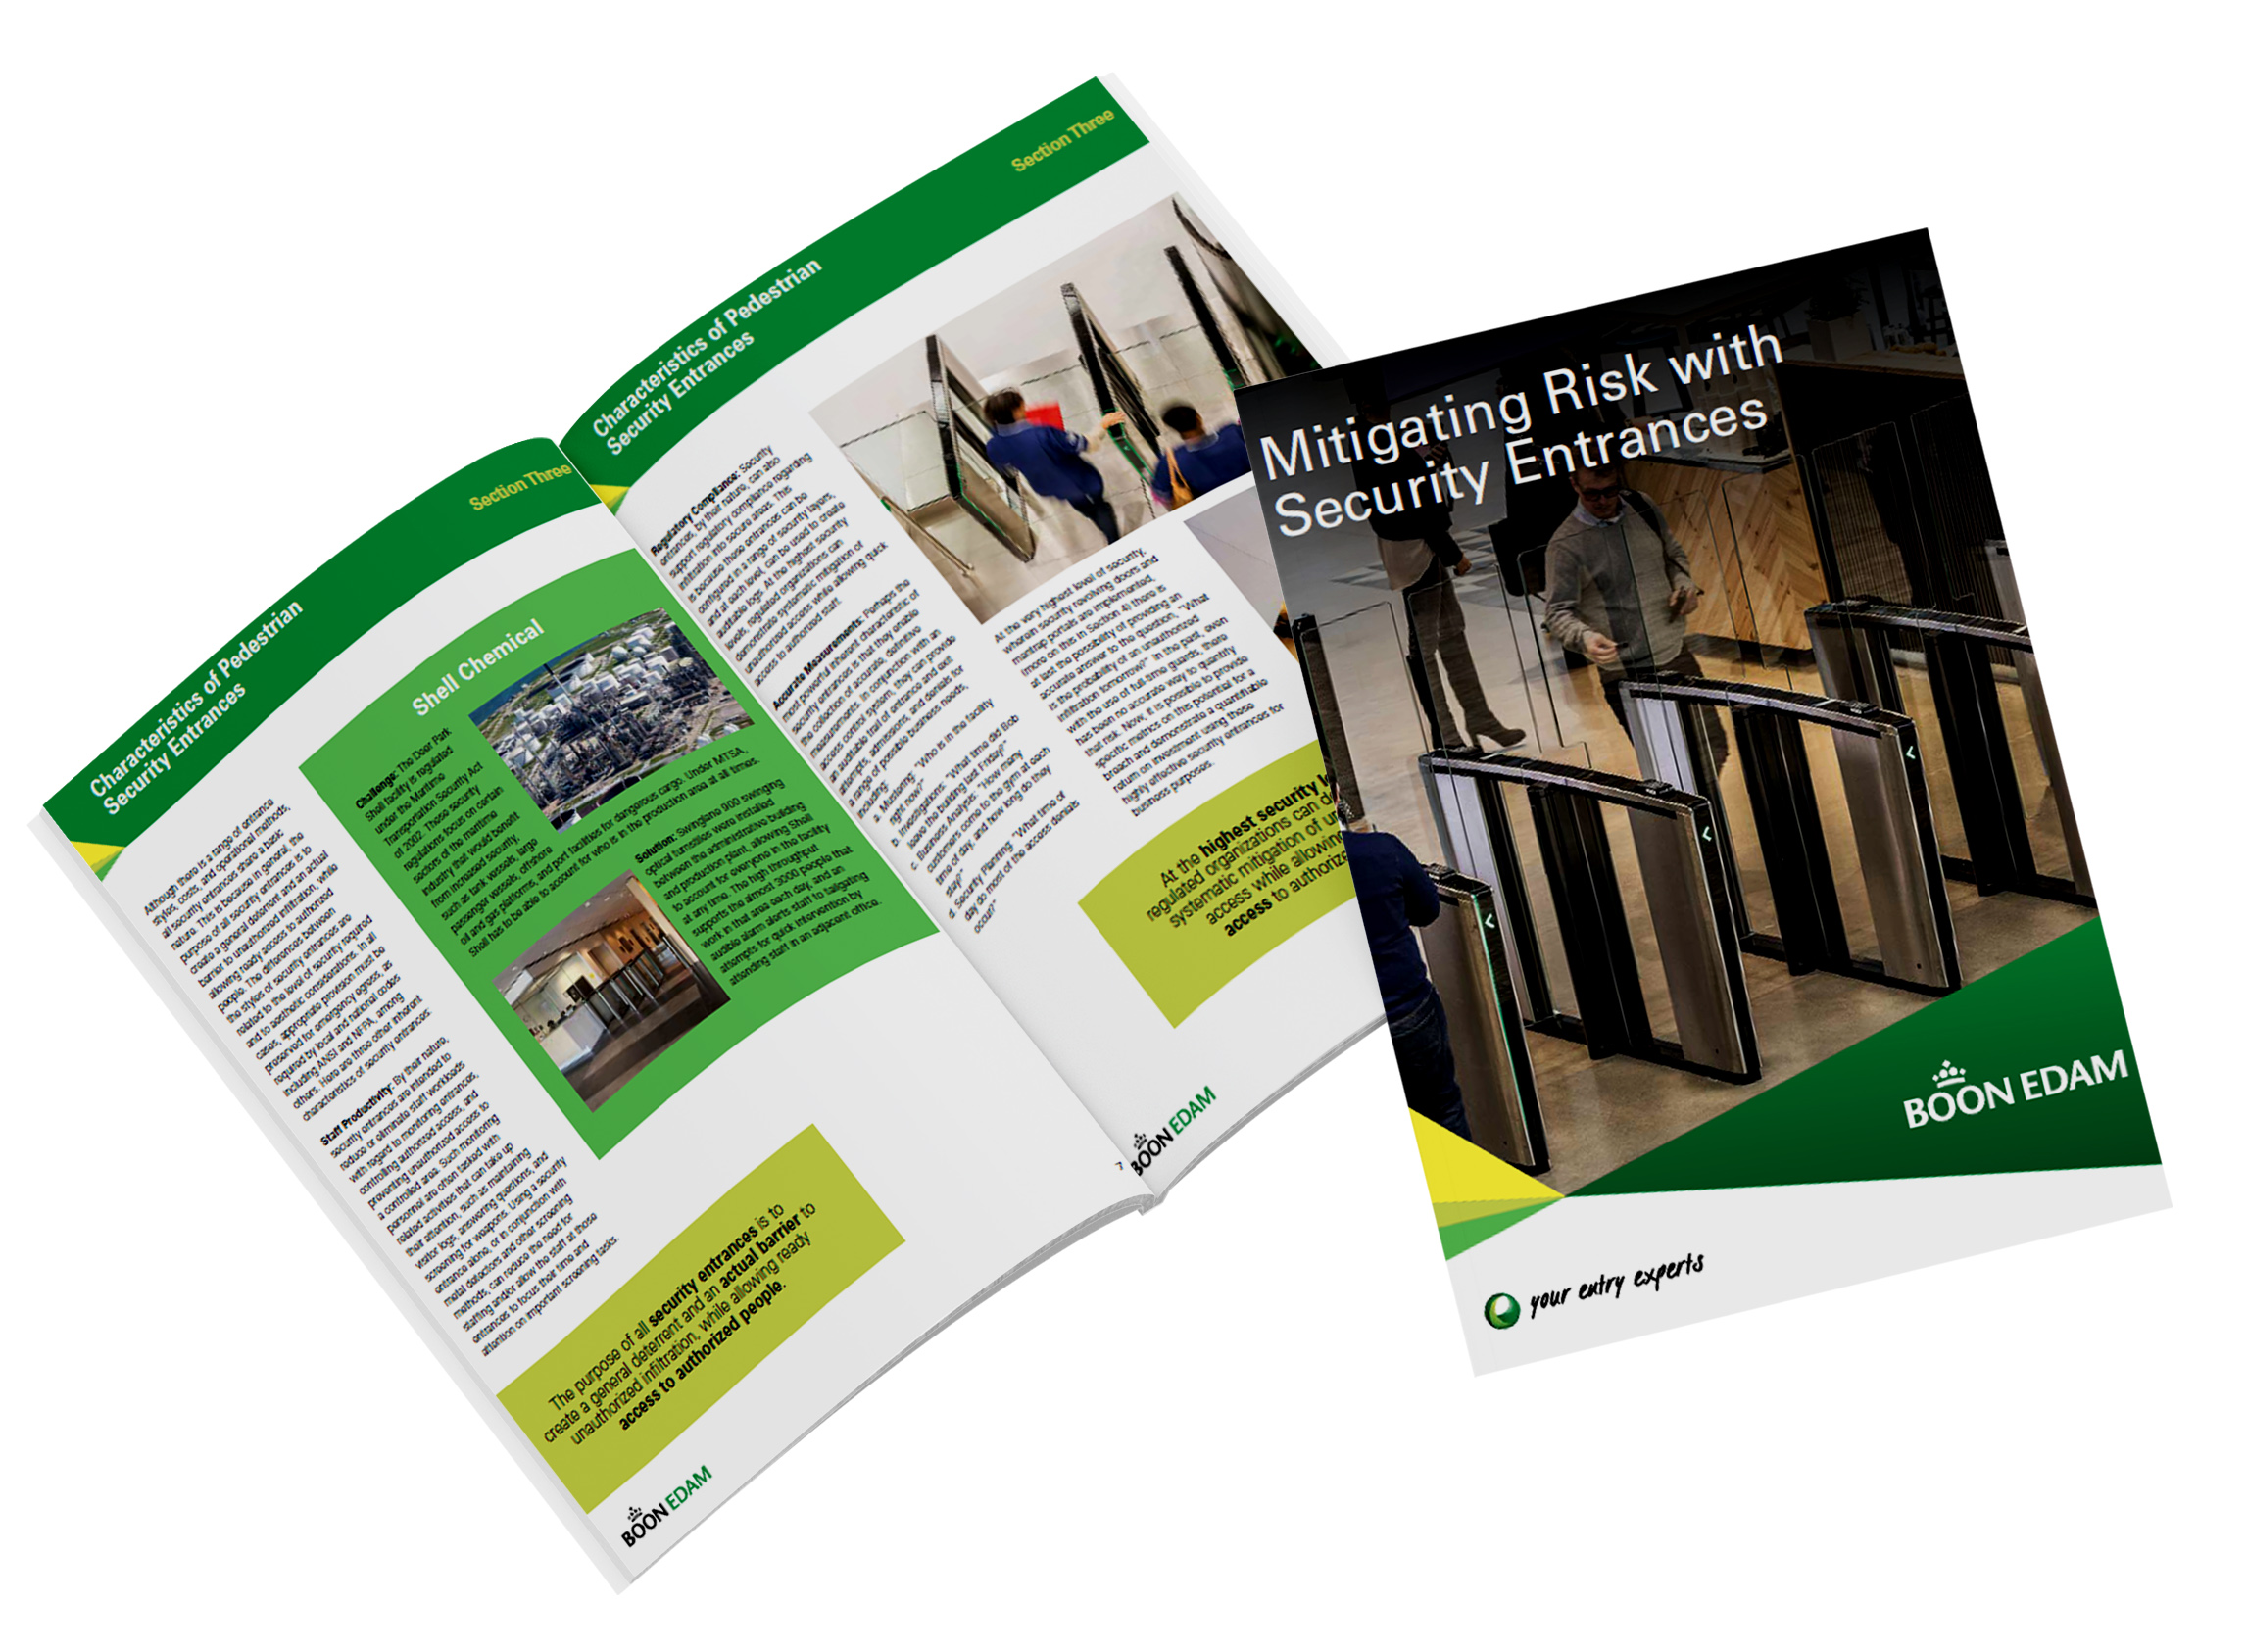 01_LP_E-Book_Mitigating Risk with Security Entrances_Paper Image.jpg